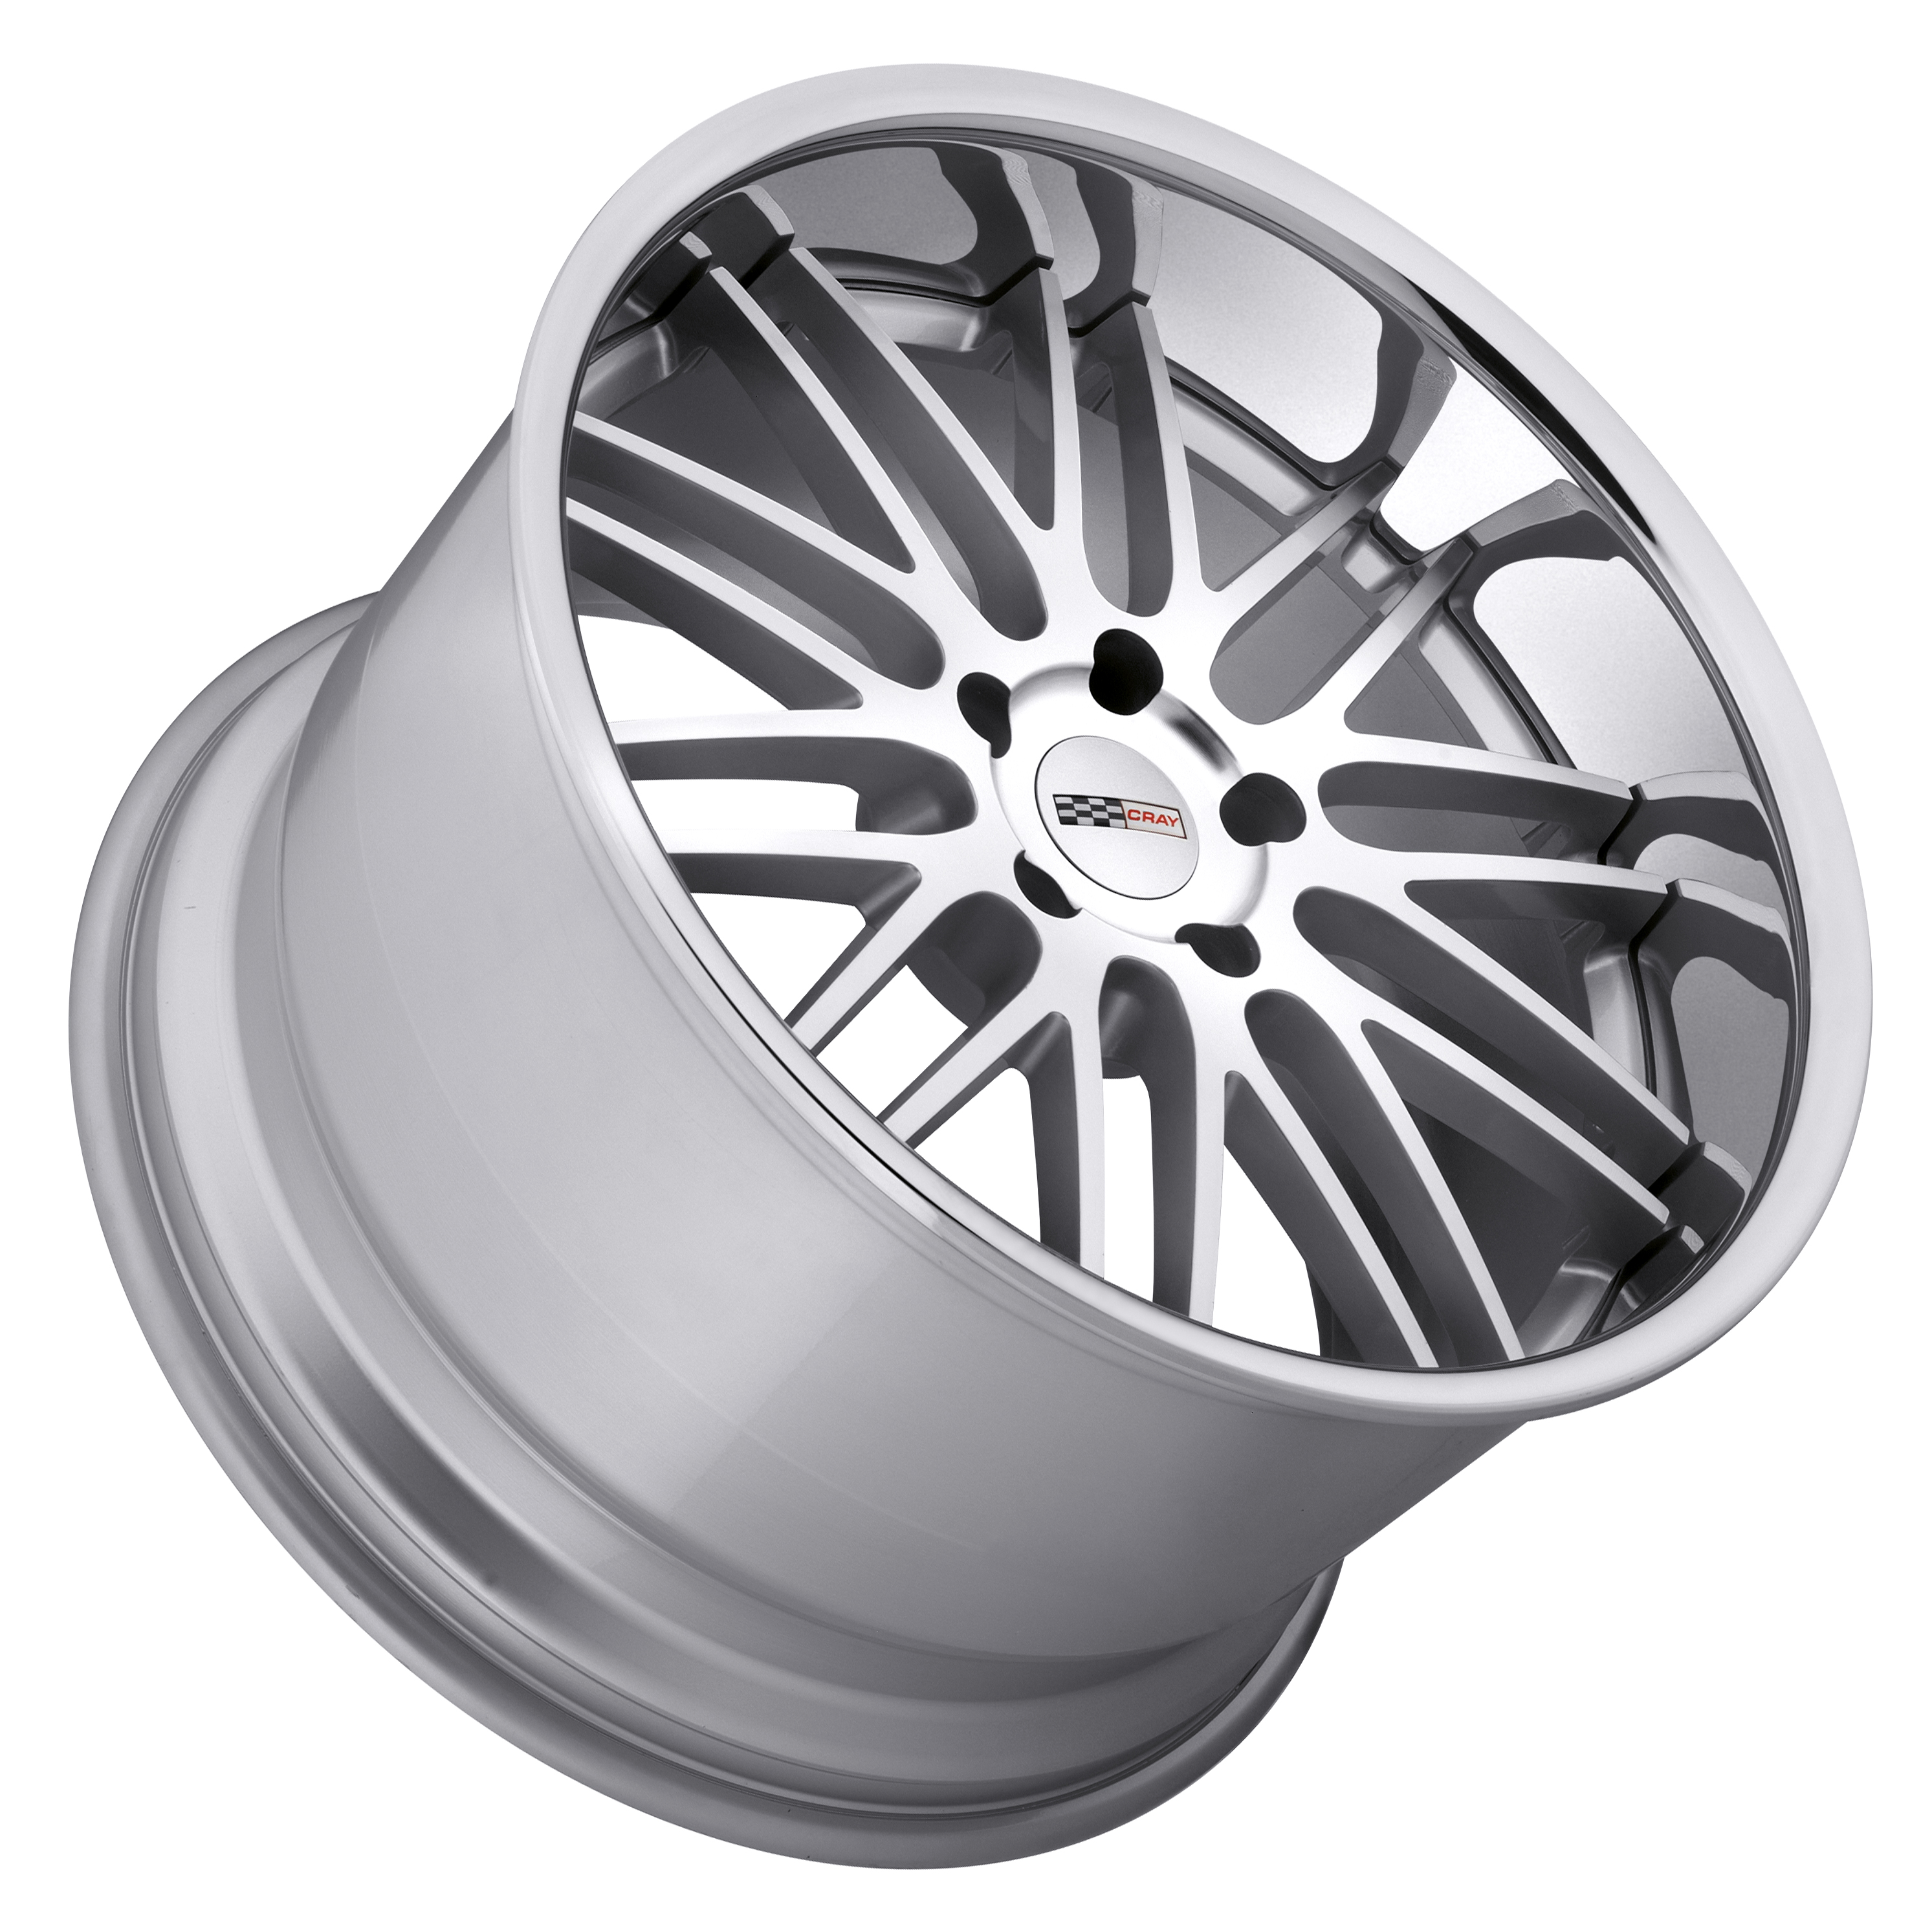 Cray Wheels to Introduce New Aftermarket Corvette Wheels at SEMA ...